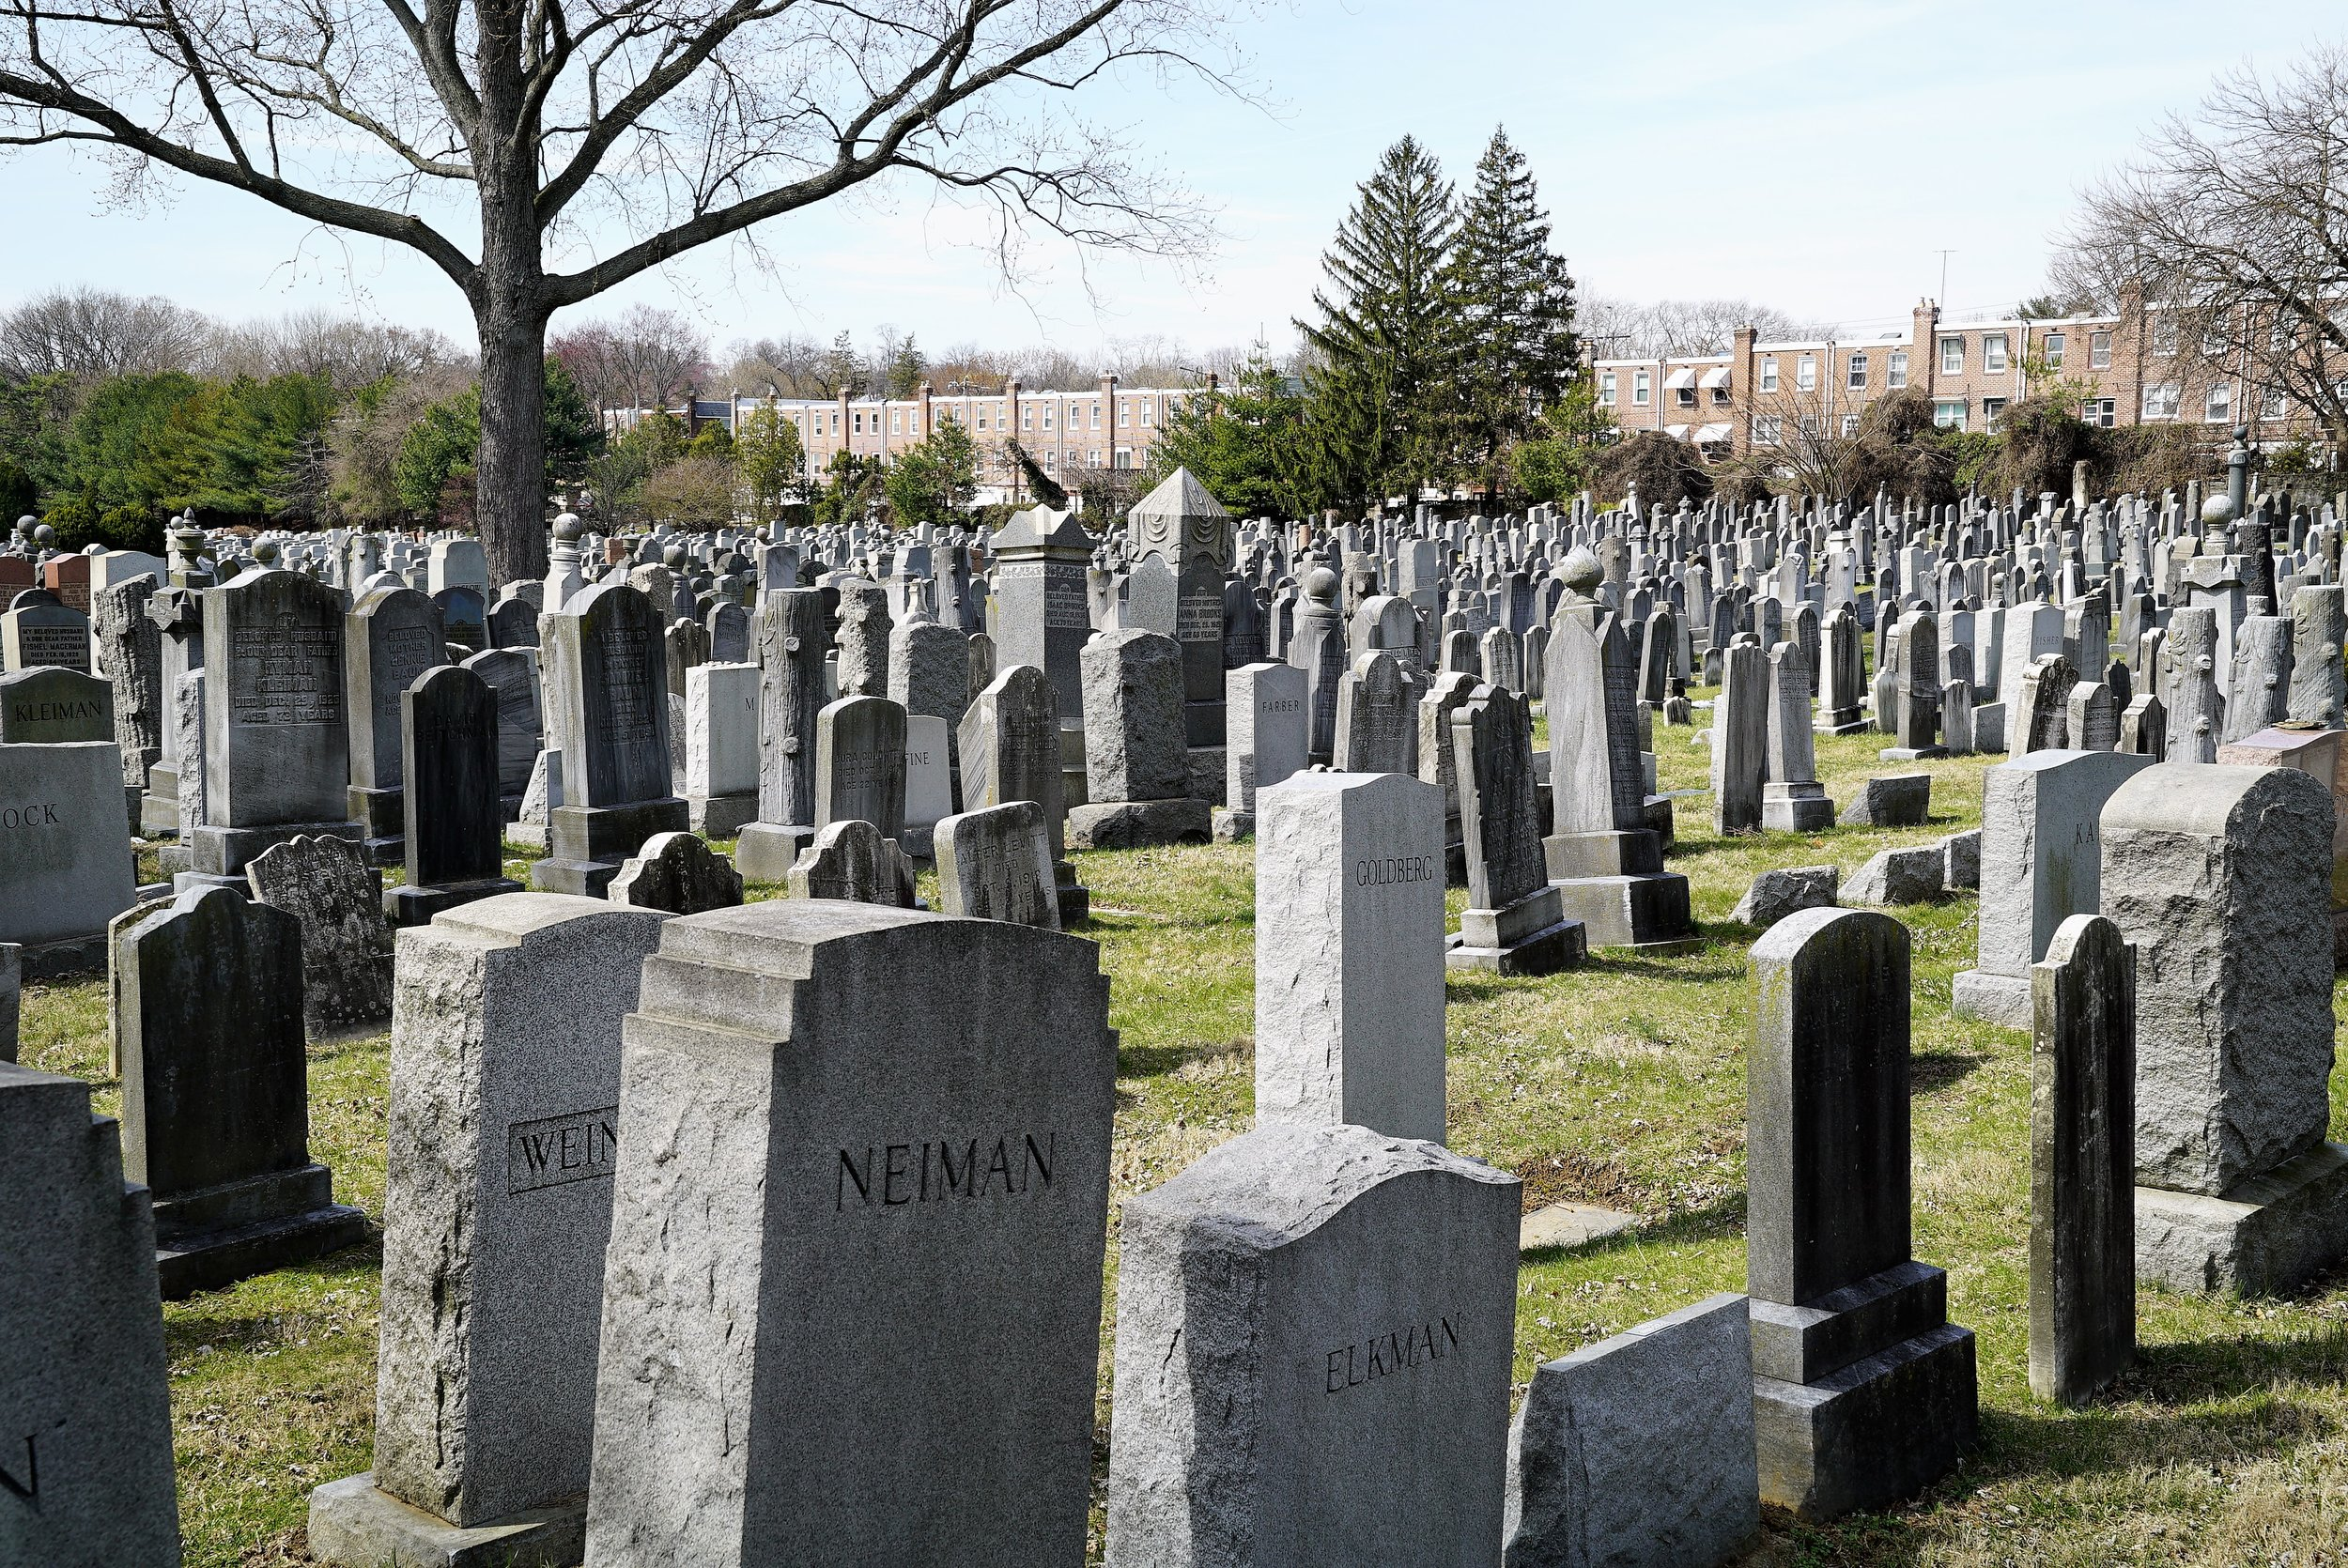 Just one part of a sea of monuments. Har Jehuda Cemetery. Upper Darby, PA.